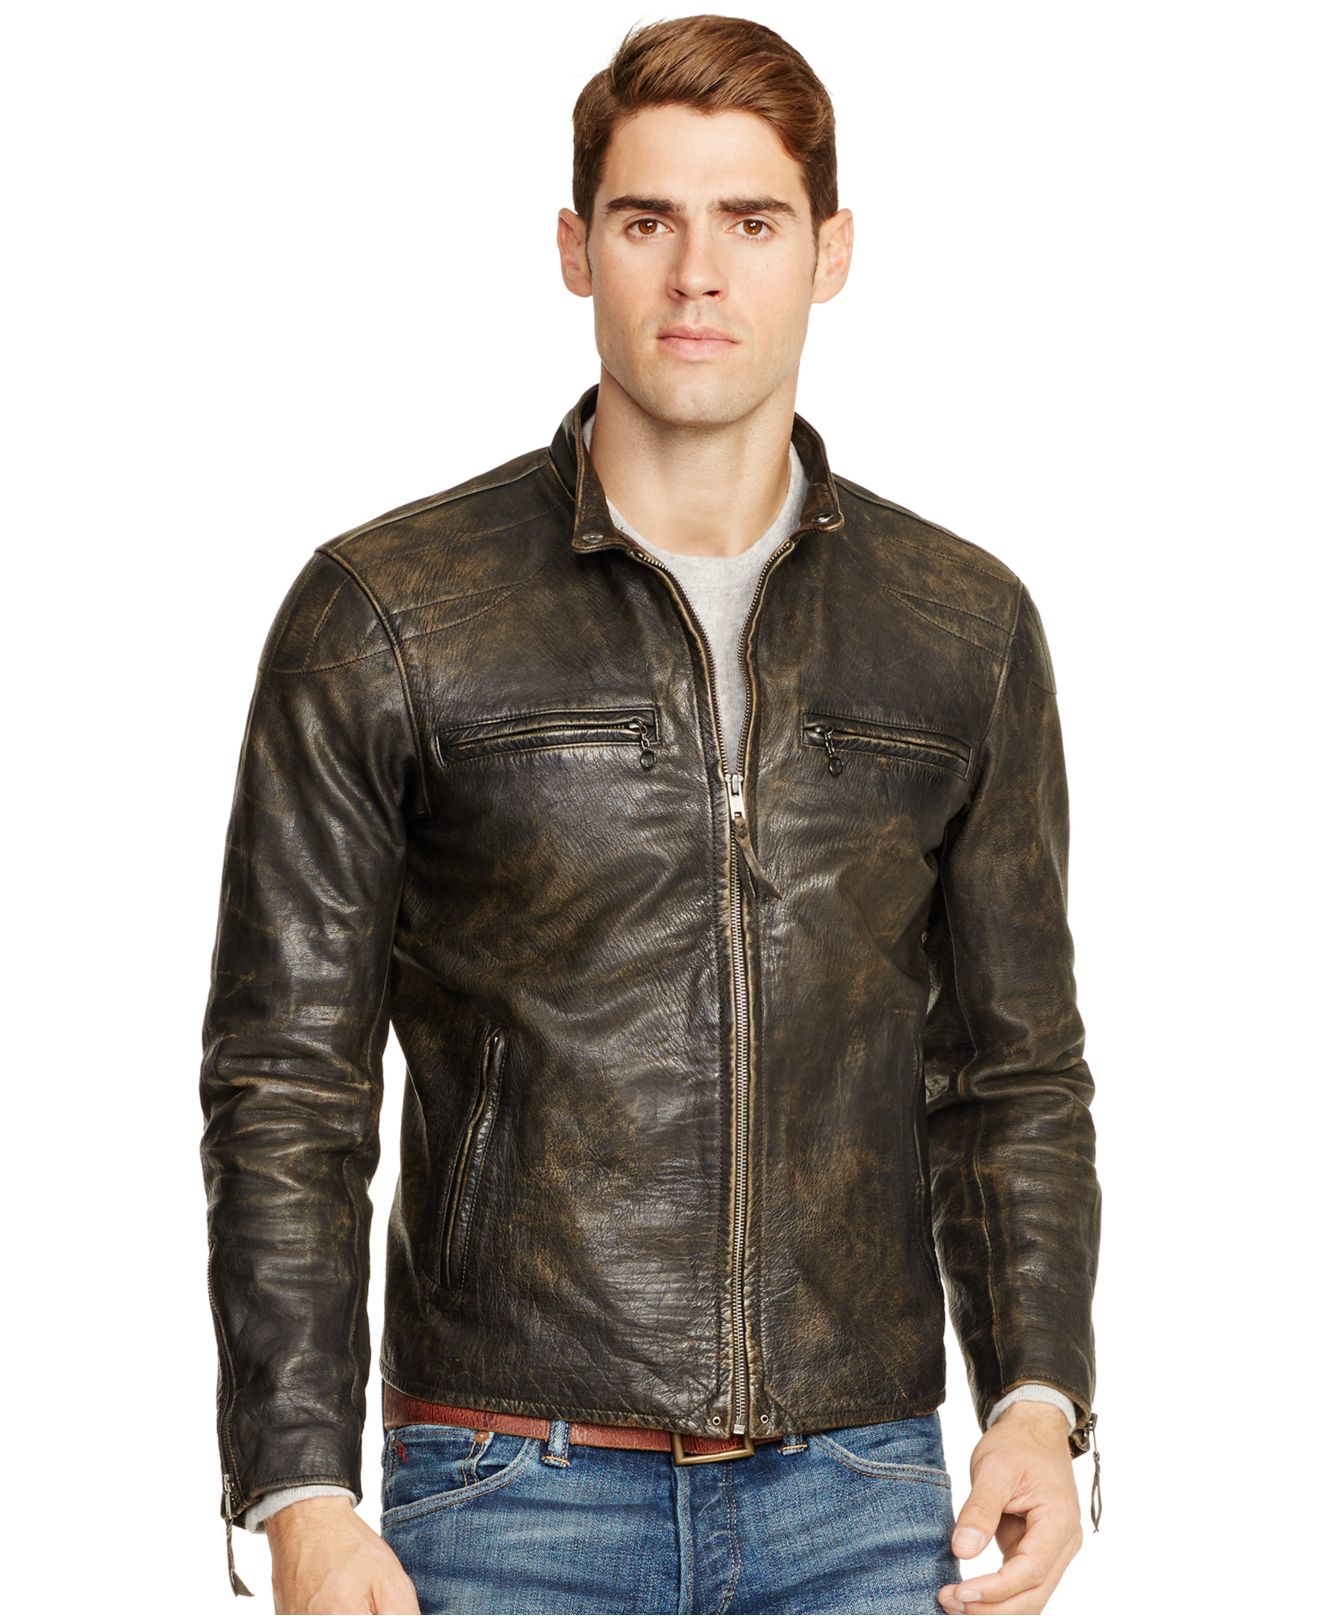 lyst polo ralph lauren distressed leather jacket in. Black Bedroom Furniture Sets. Home Design Ideas